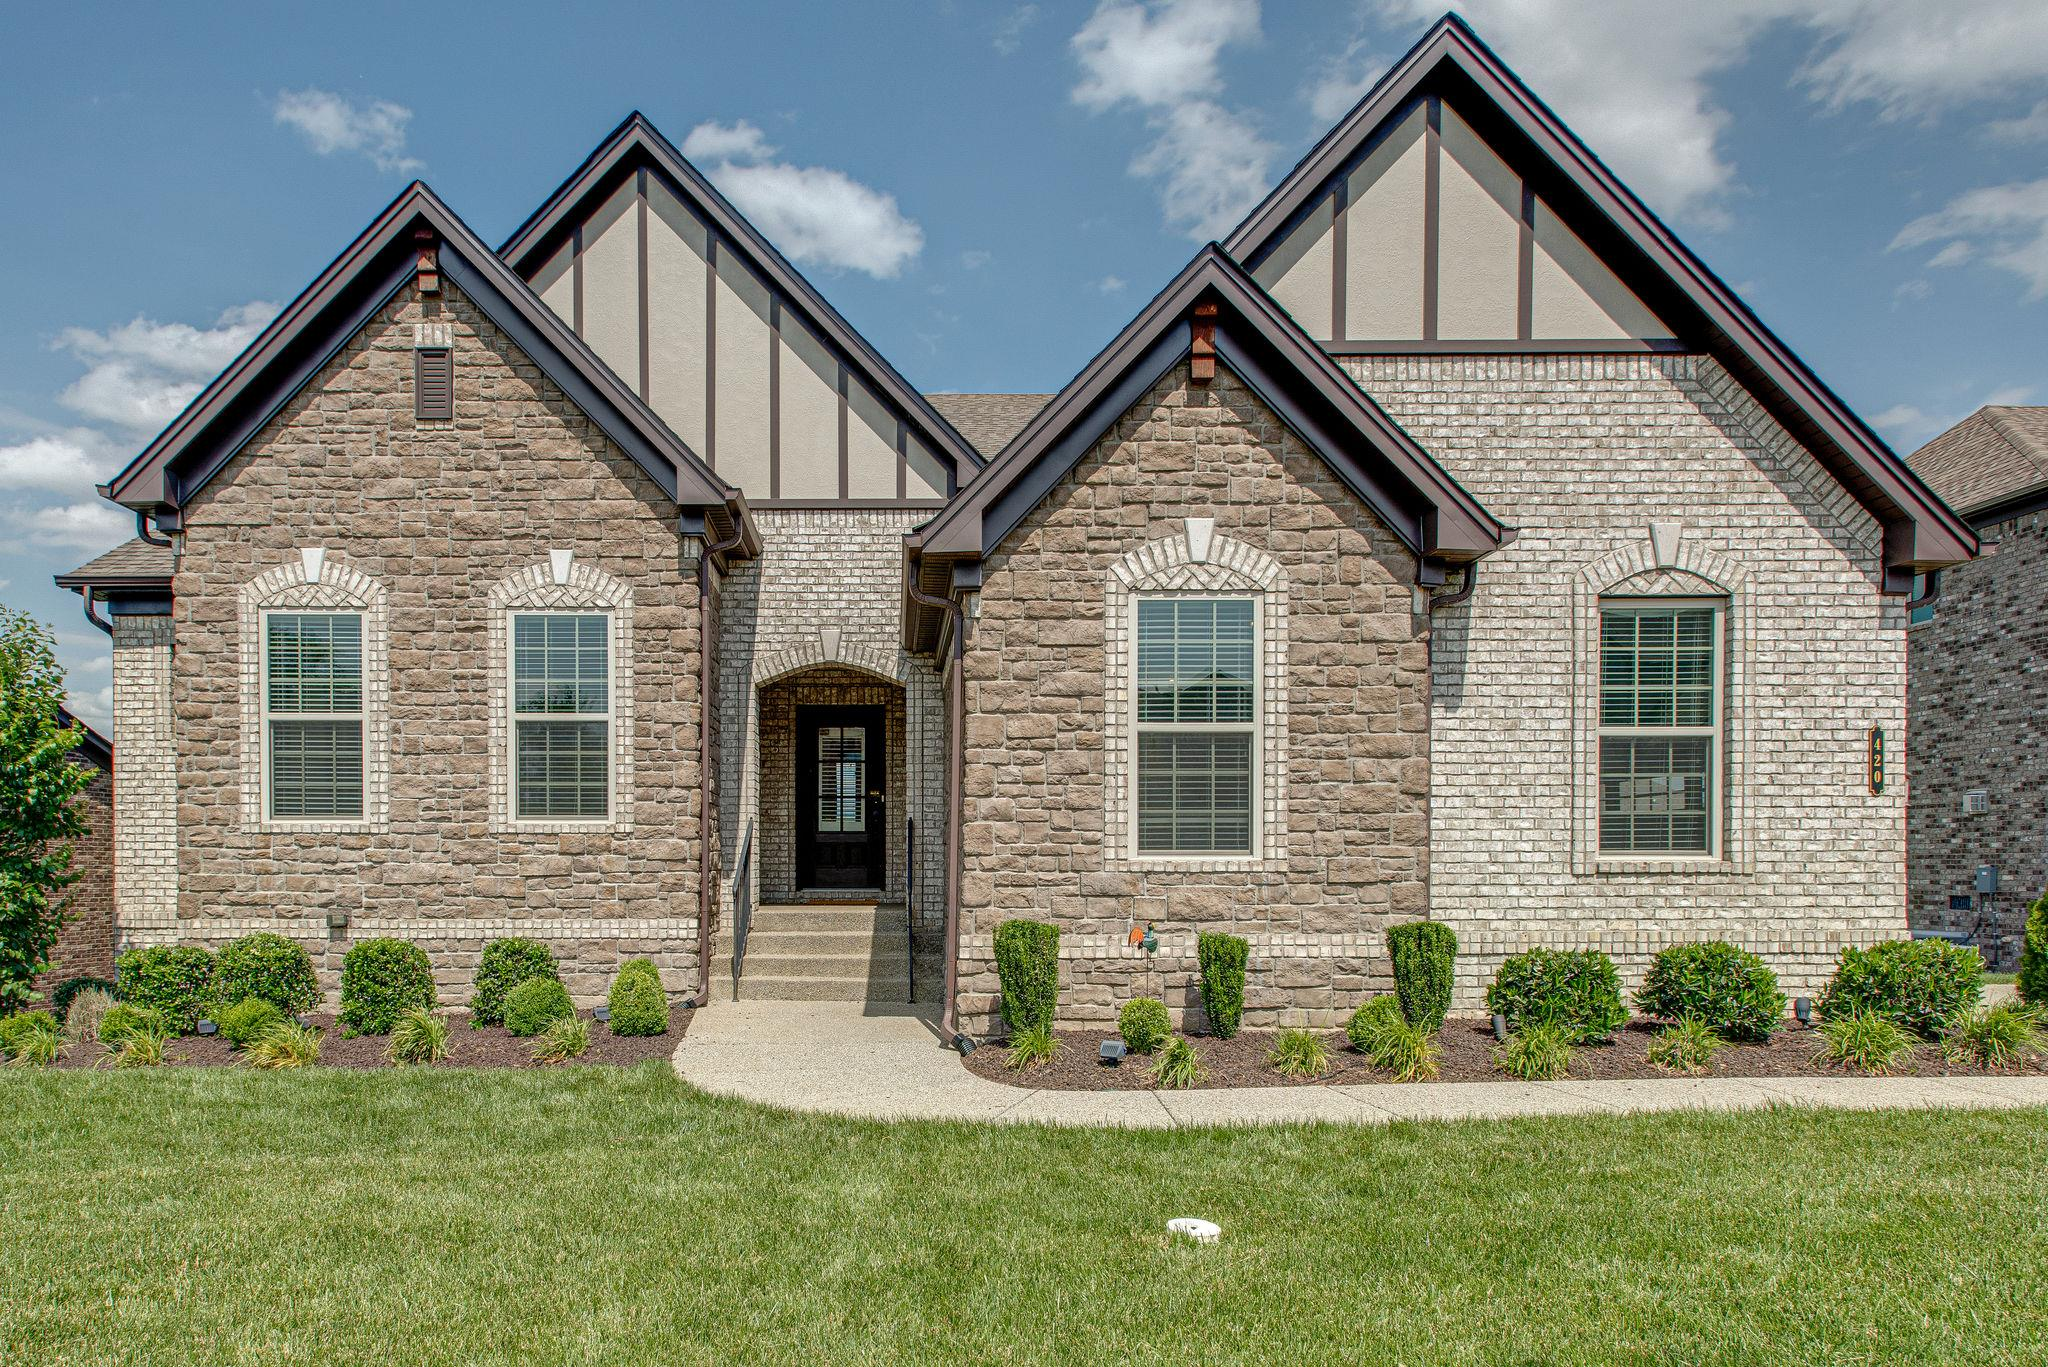 420 Larkhill Ln, Nolensville in Williamson County County, TN 37135 Home for Sale